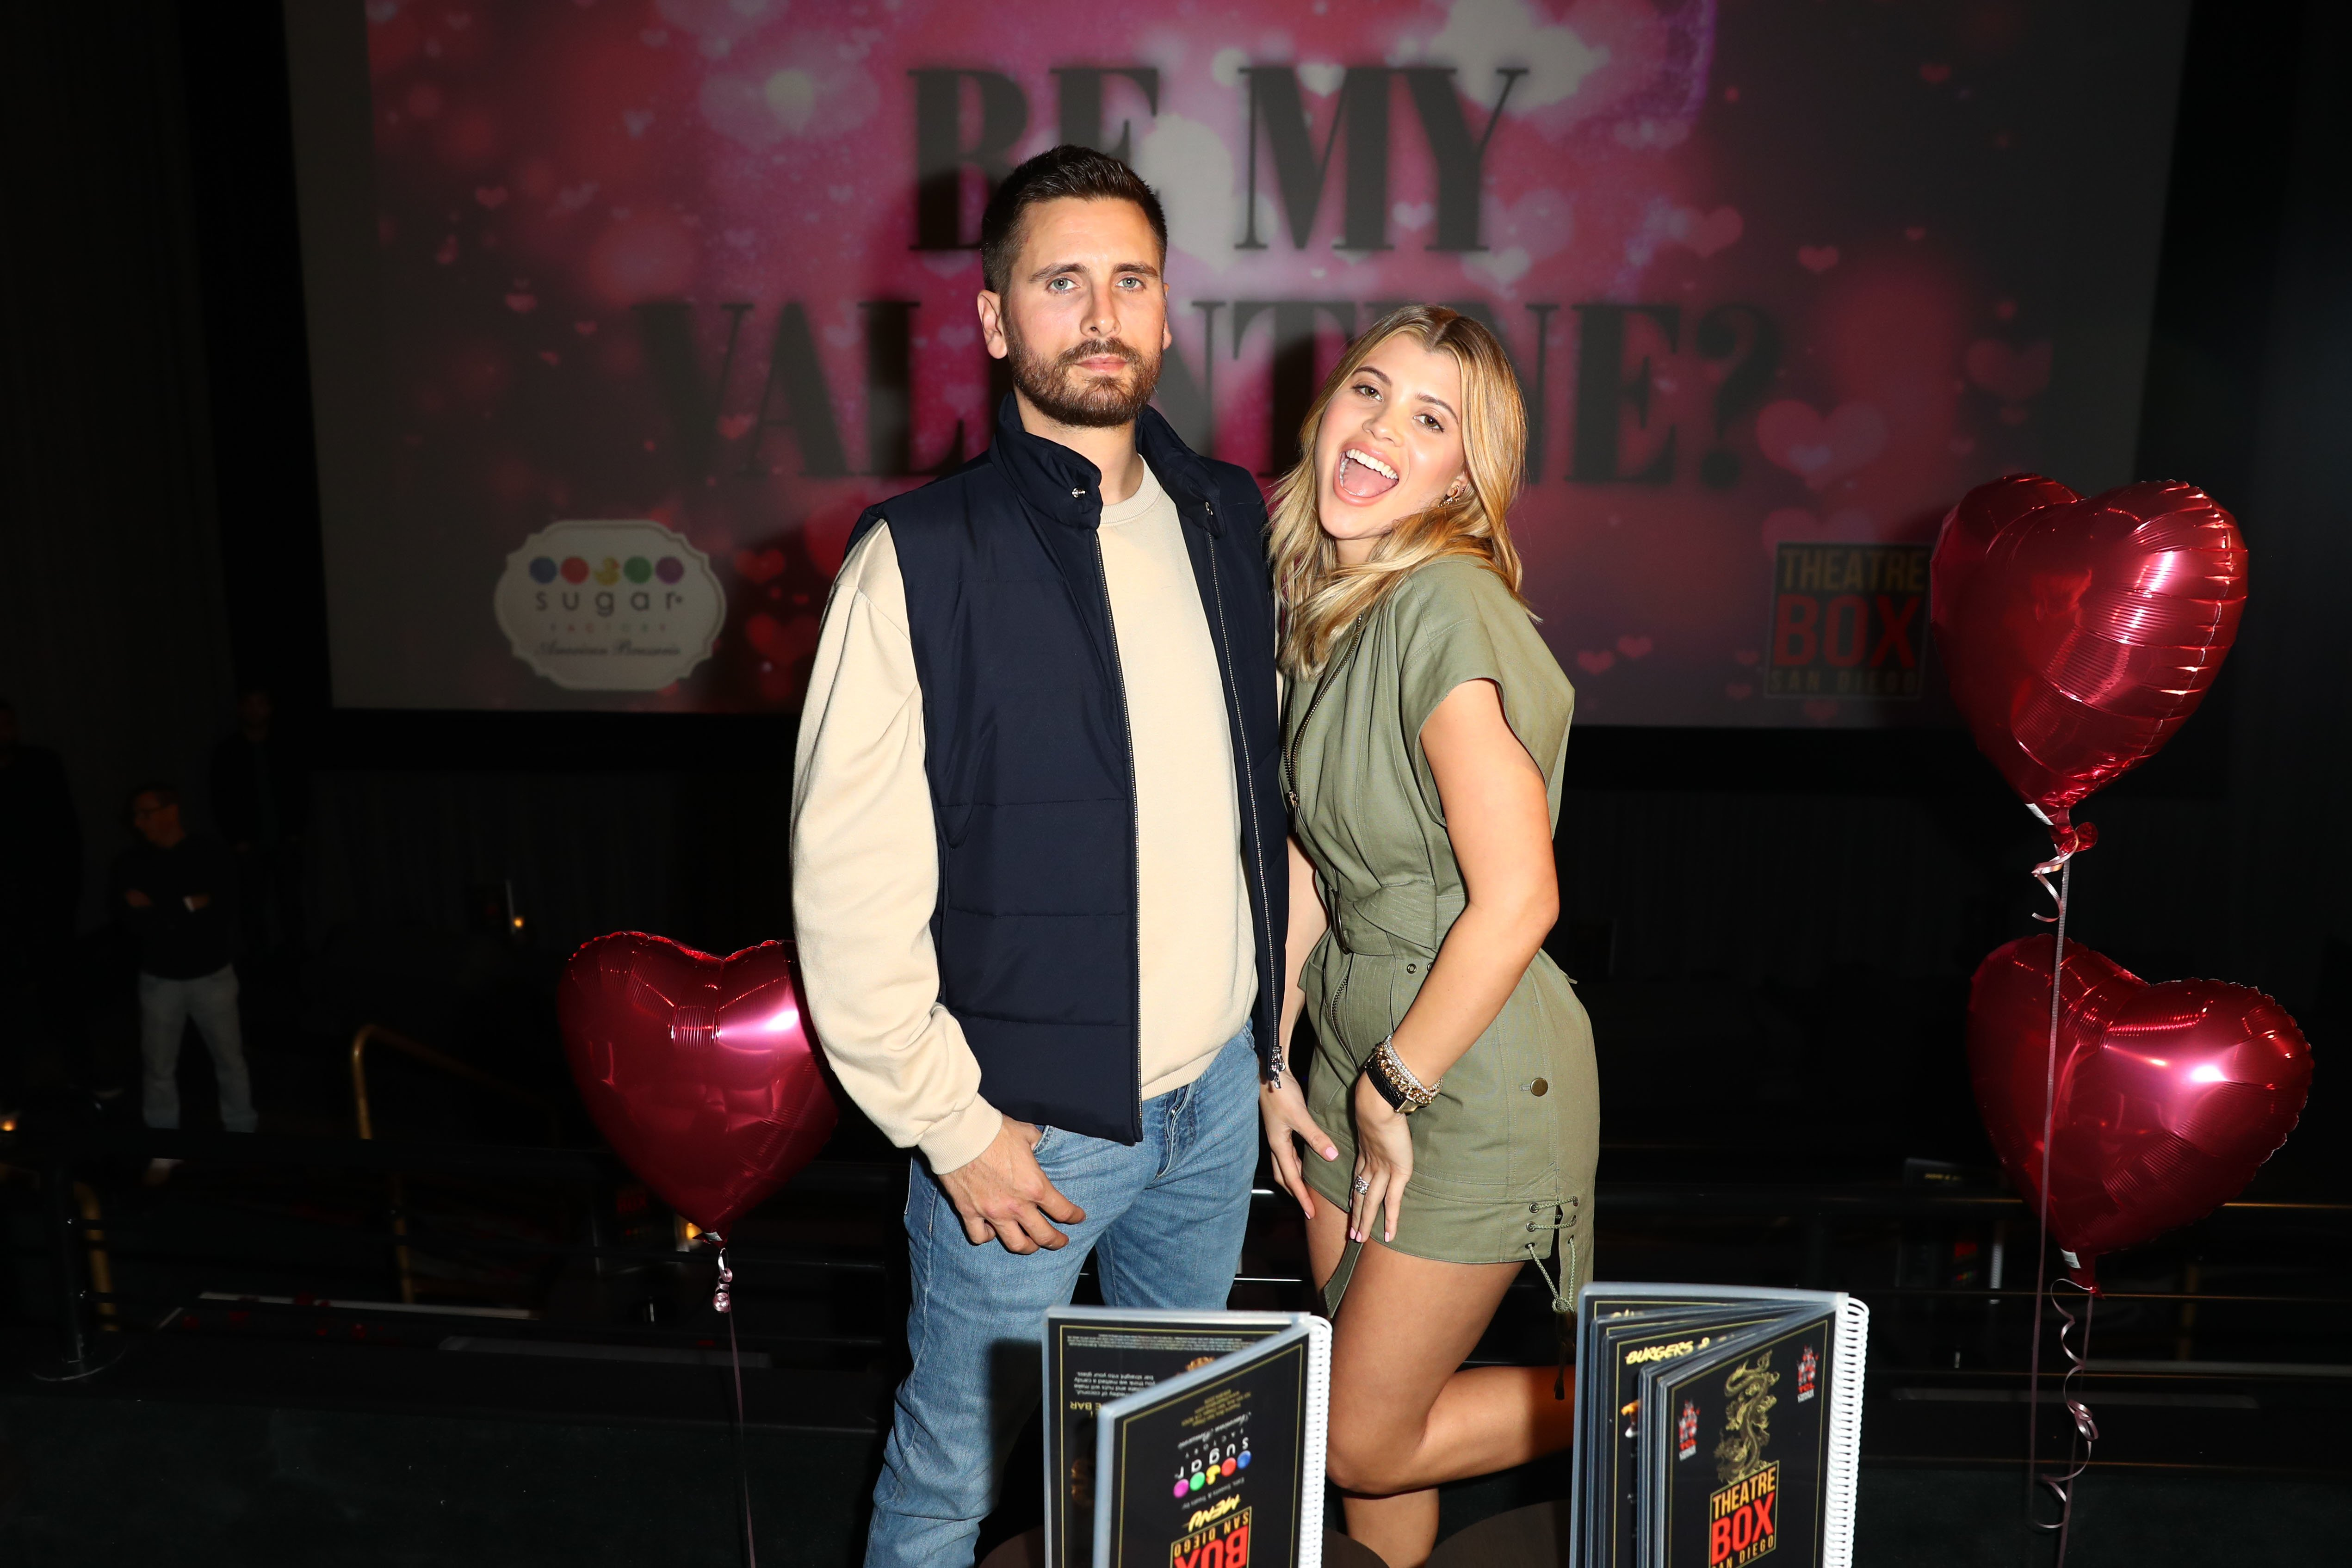 Scott Disick and Sofia Richie celebrate Valentine's Day at San Diego's new Theatre Box® Entertainment Complex on February 14, 2019, in San Diego, California. | Source: Getty Images.